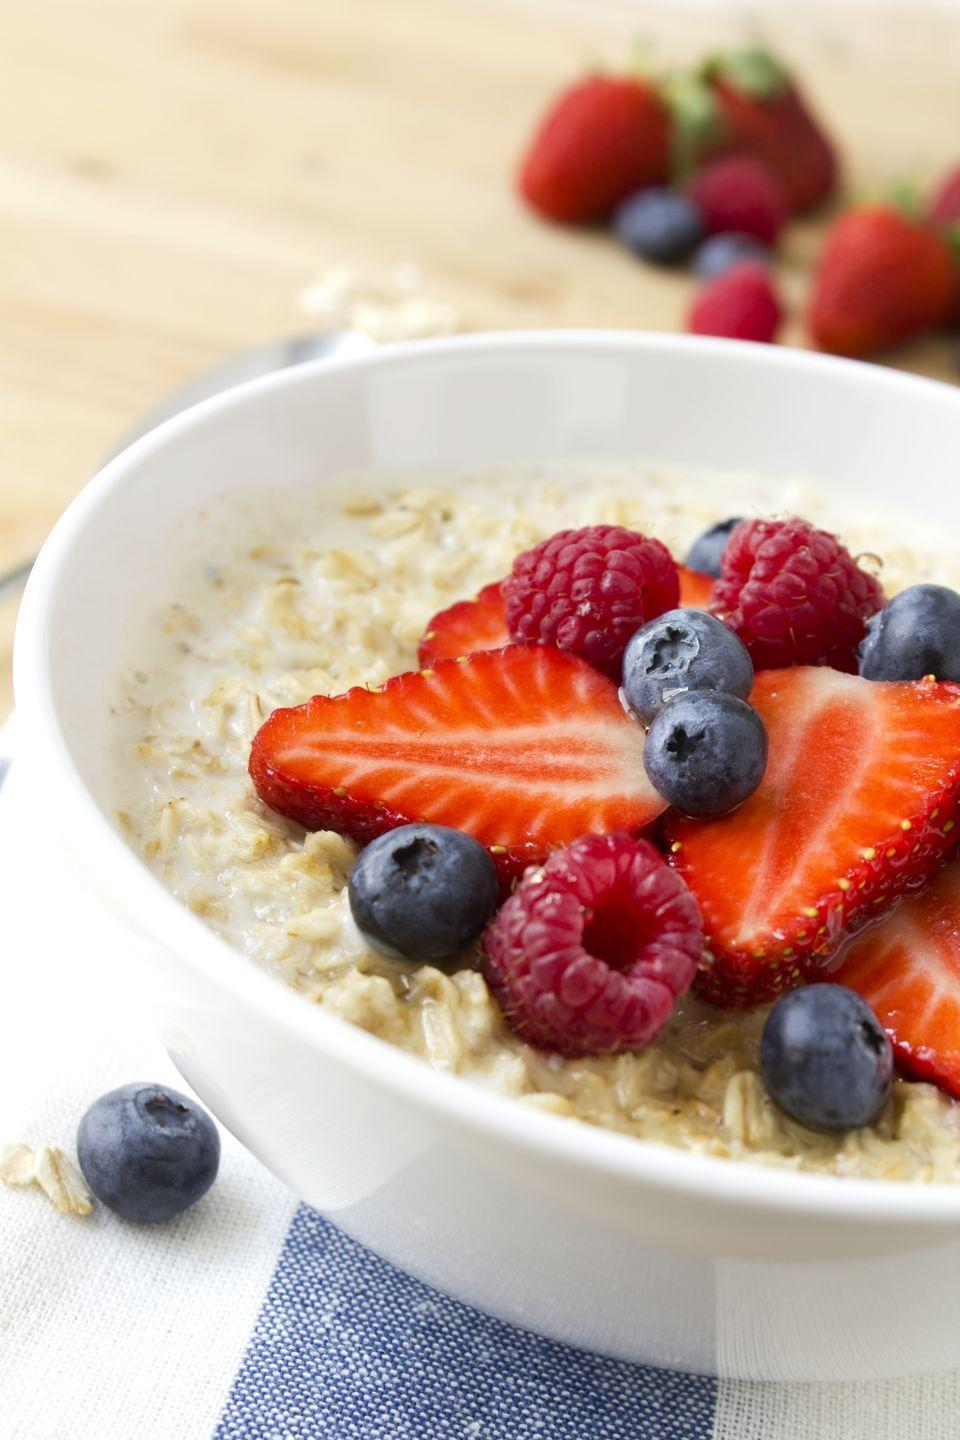 """<p>It may be a favorite for breakfast, but you might want to try eating a bowl of <a href=""""https://www.goodhousekeeping.com/health/diet-nutrition/a31028145/oatmeal-benefits/"""" rel=""""nofollow noopener"""" target=""""_blank"""" data-ylk=""""slk:oatmeal"""" class=""""link rapid-noclick-resp"""">oatmeal</a> after dark for help sleeping through the night. """"Grains in oatmeal trigger insulin production much like whole-grain bread,"""" says <a href=""""https://www.cynthiagarcia.com/"""" rel=""""nofollow noopener"""" target=""""_blank"""" data-ylk=""""slk:Cynthia Pasquella"""" class=""""link rapid-noclick-resp"""">Cynthia Pasquella</a>, CCN, CHLC, CWC. """"They raise your blood sugar naturally and make you feel sleepy. <a href=""""https://www.goodhousekeeping.com/food-recipes/g3703/overnight-oats/"""" rel=""""nofollow noopener"""" target=""""_blank"""" data-ylk=""""slk:Oats"""" class=""""link rapid-noclick-resp"""">Oats</a> are also rich in melatonin, which relaxes the body and helps you fall asleep.""""</p>"""